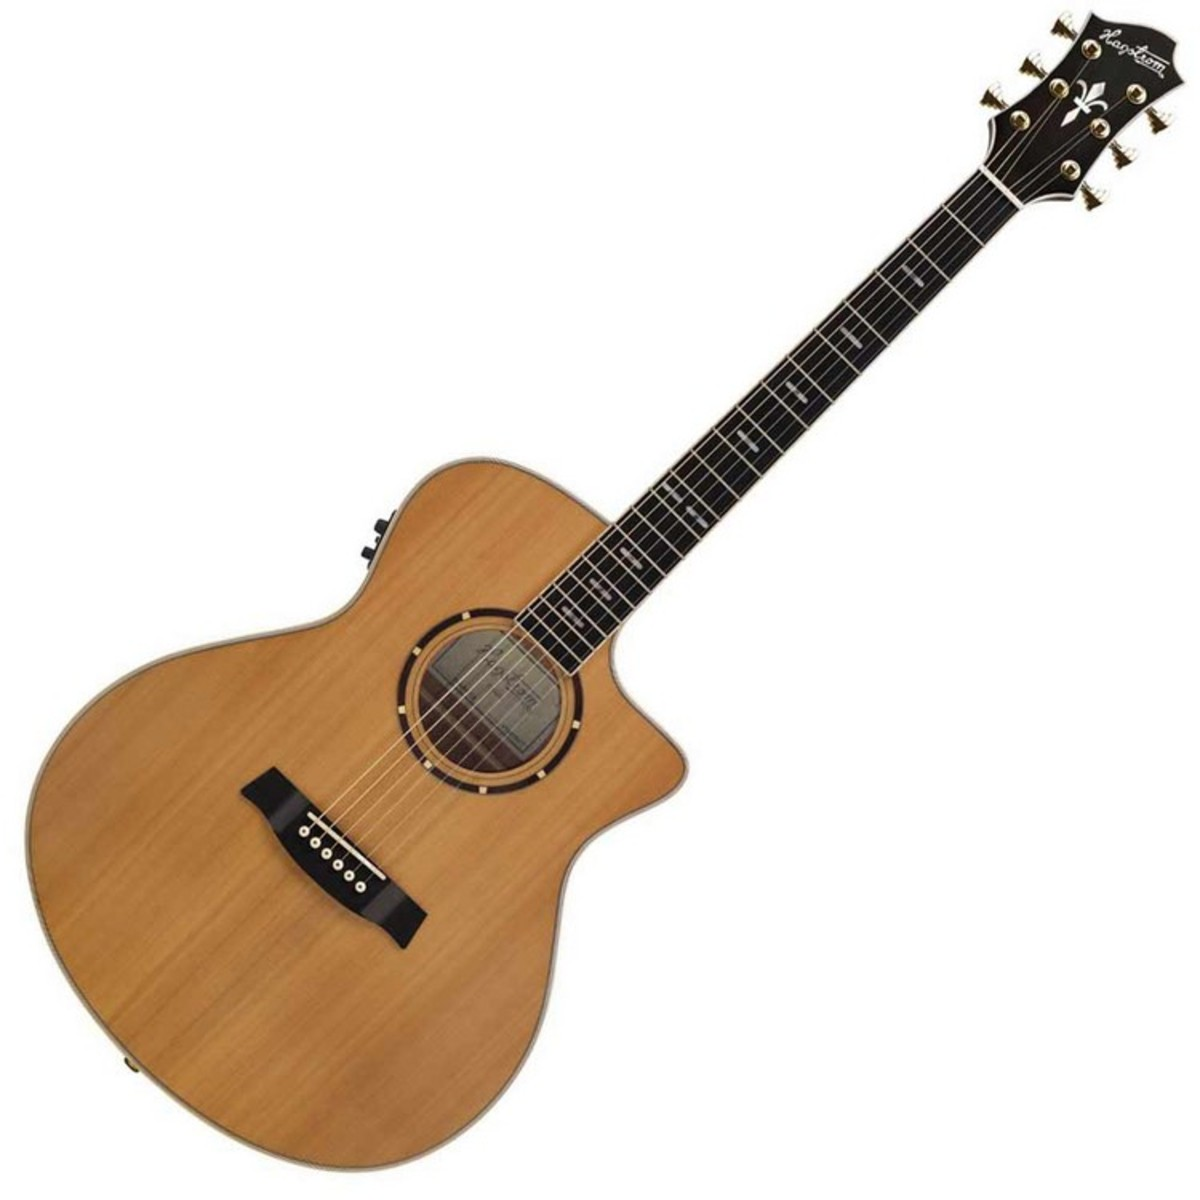 Click to view product details and reviews for Hagstrom Elfdalia Grand Auditorium Electro Acoustic Guitar Natural.